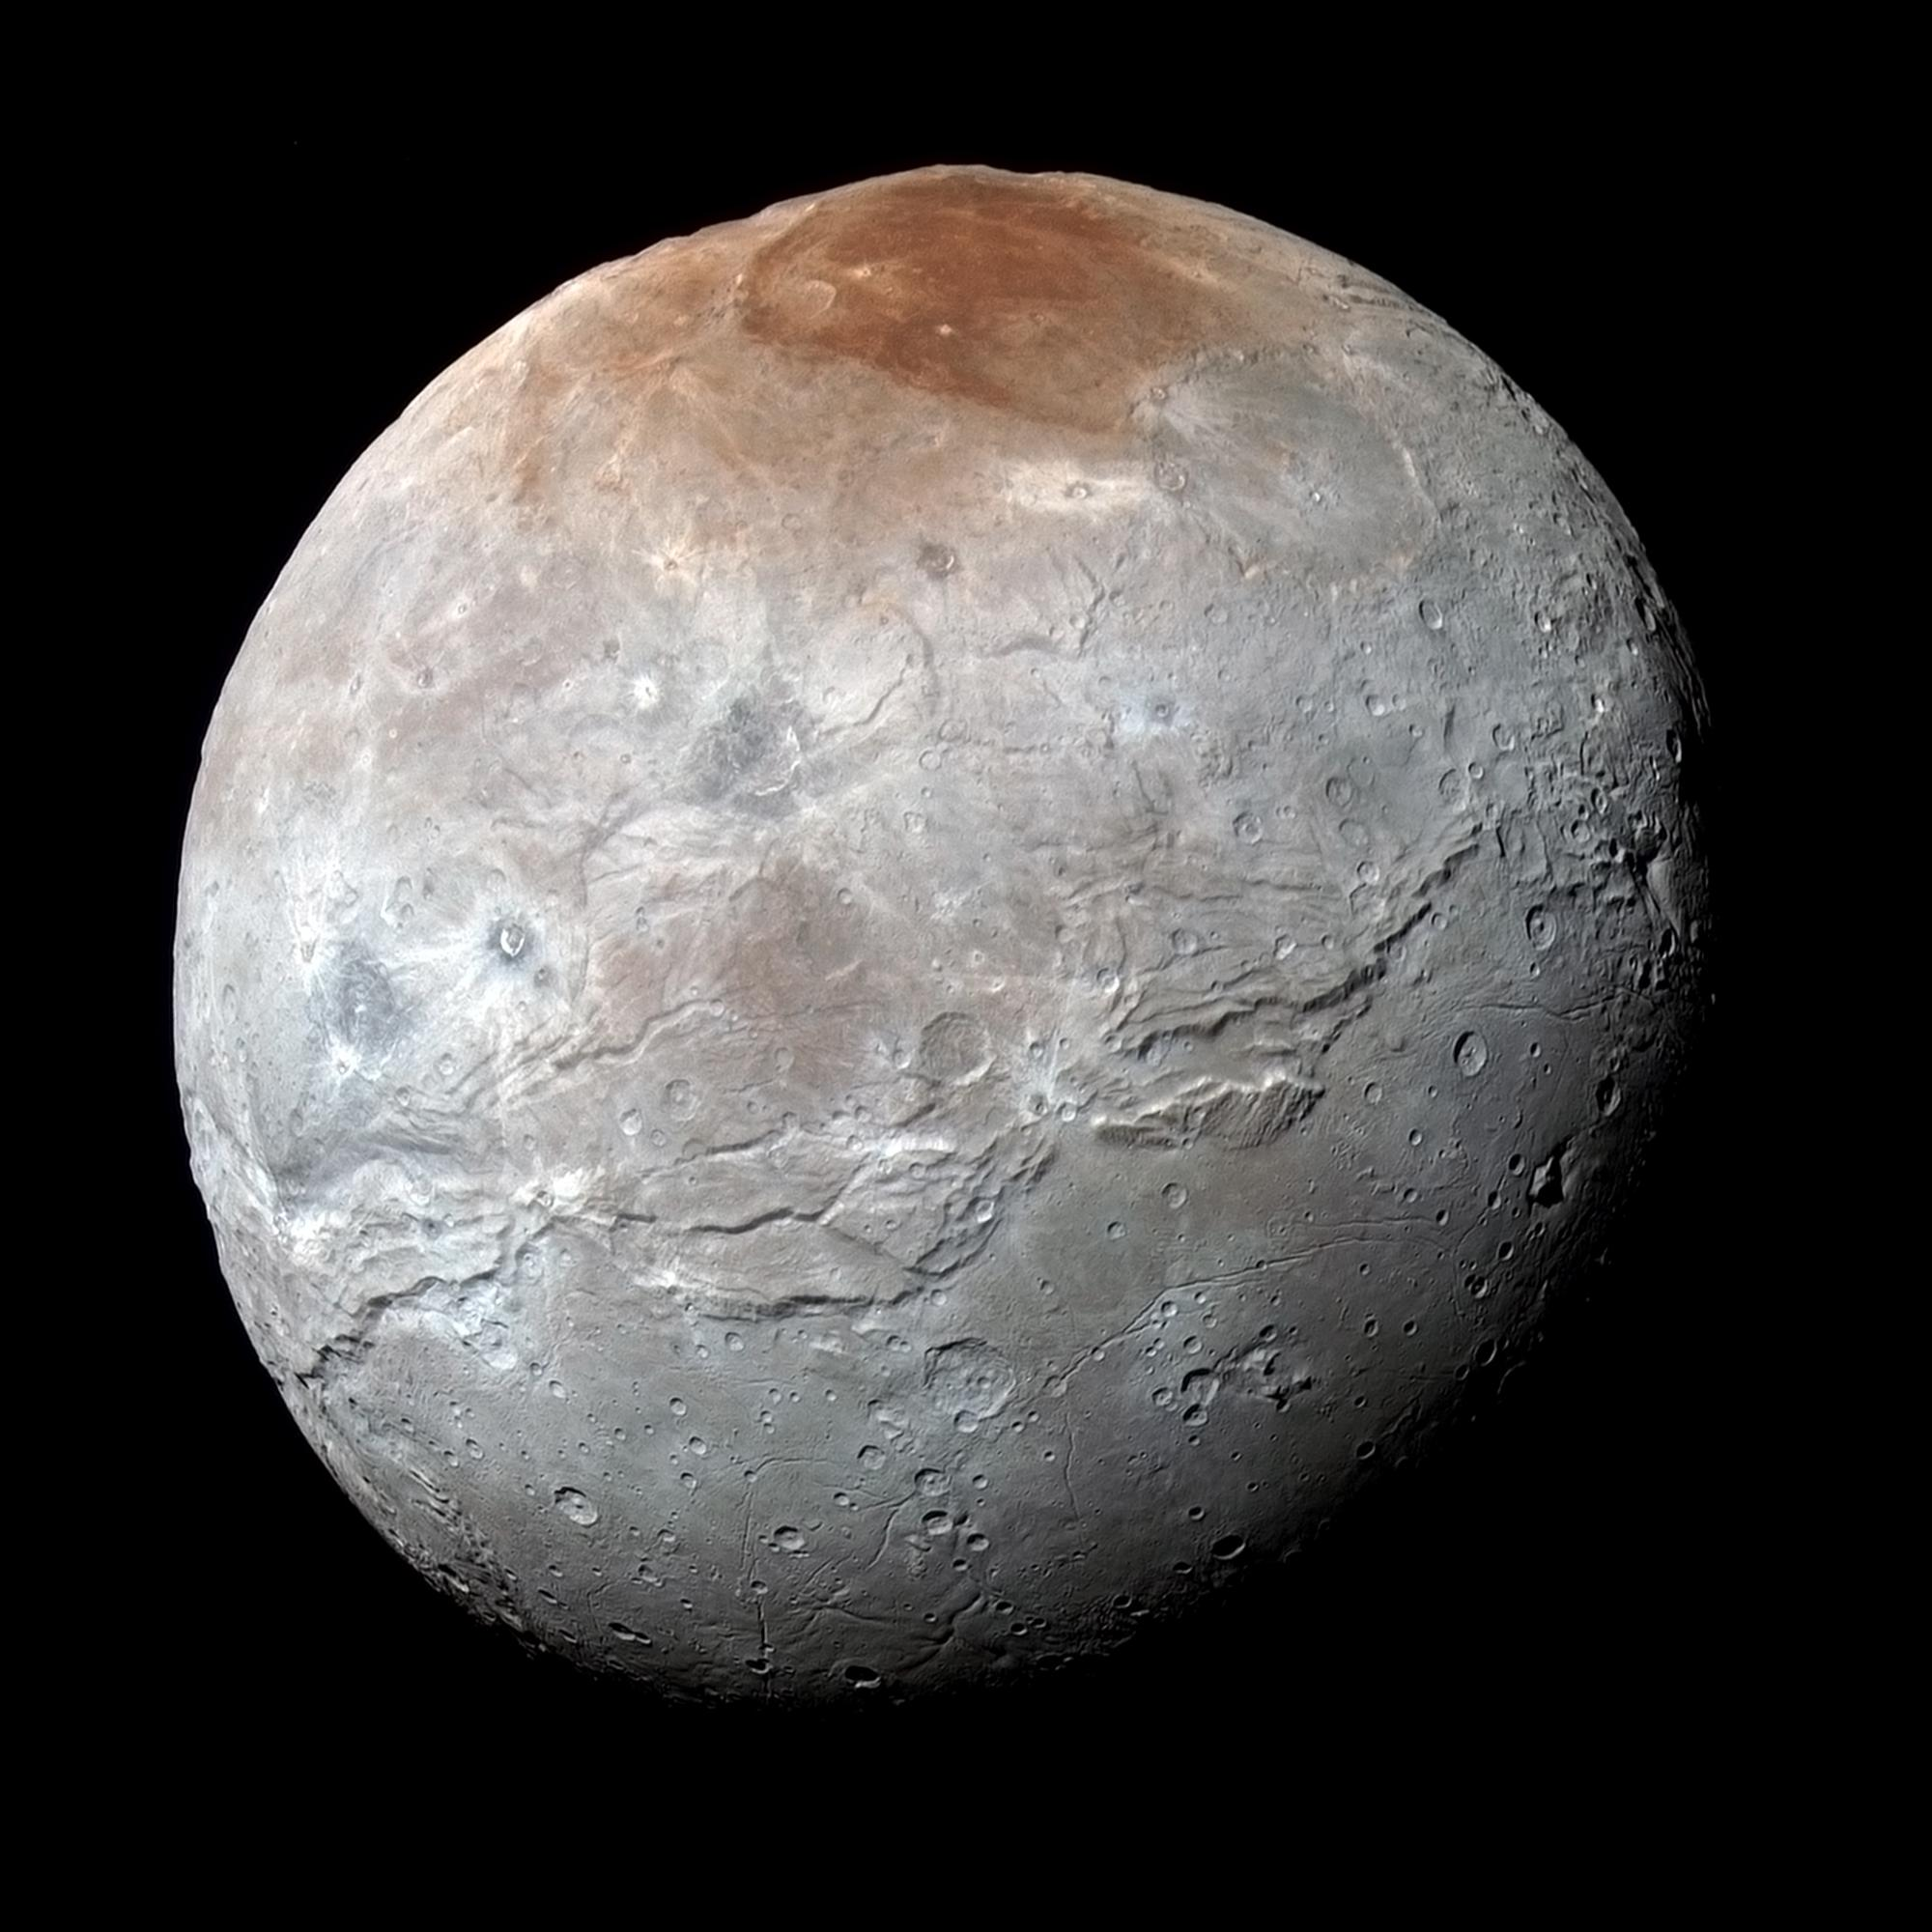 Enhanced color image showing surface details of moon Charon.